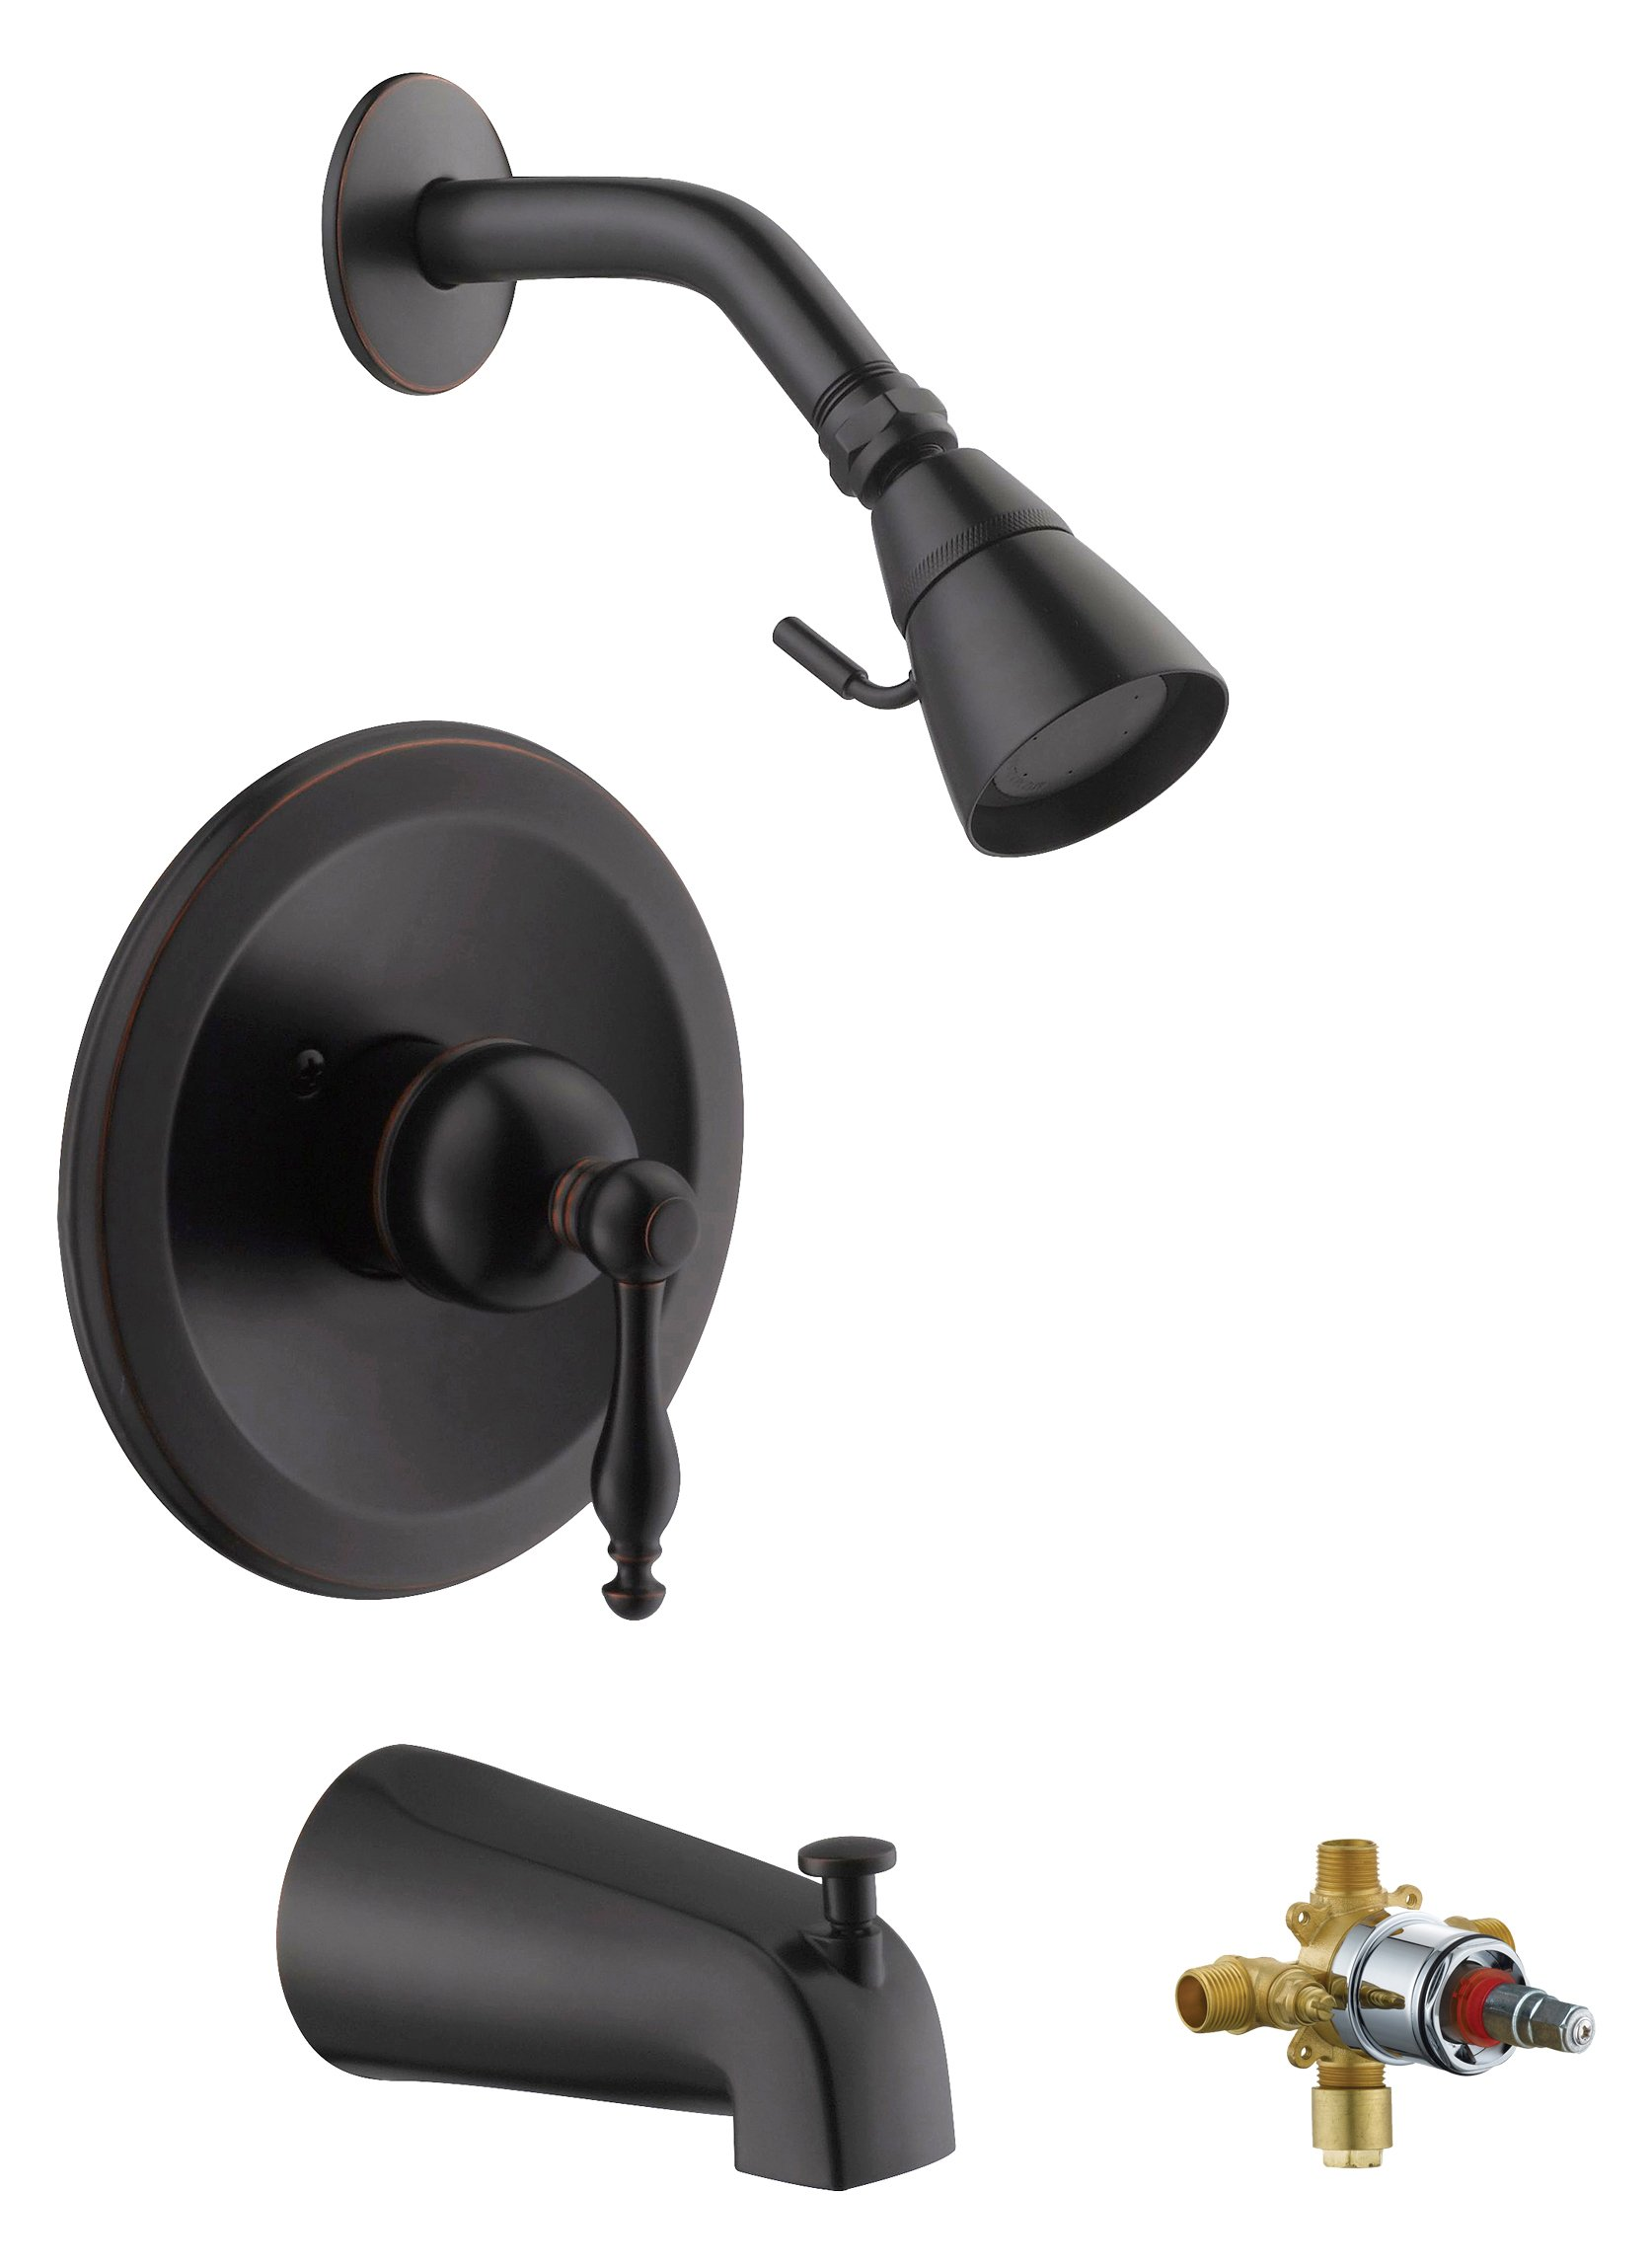 Design House 546028 Saratoga T & S Faucet, Oil Rubbed Bronze, Includes Complete Installation Kit with Valve